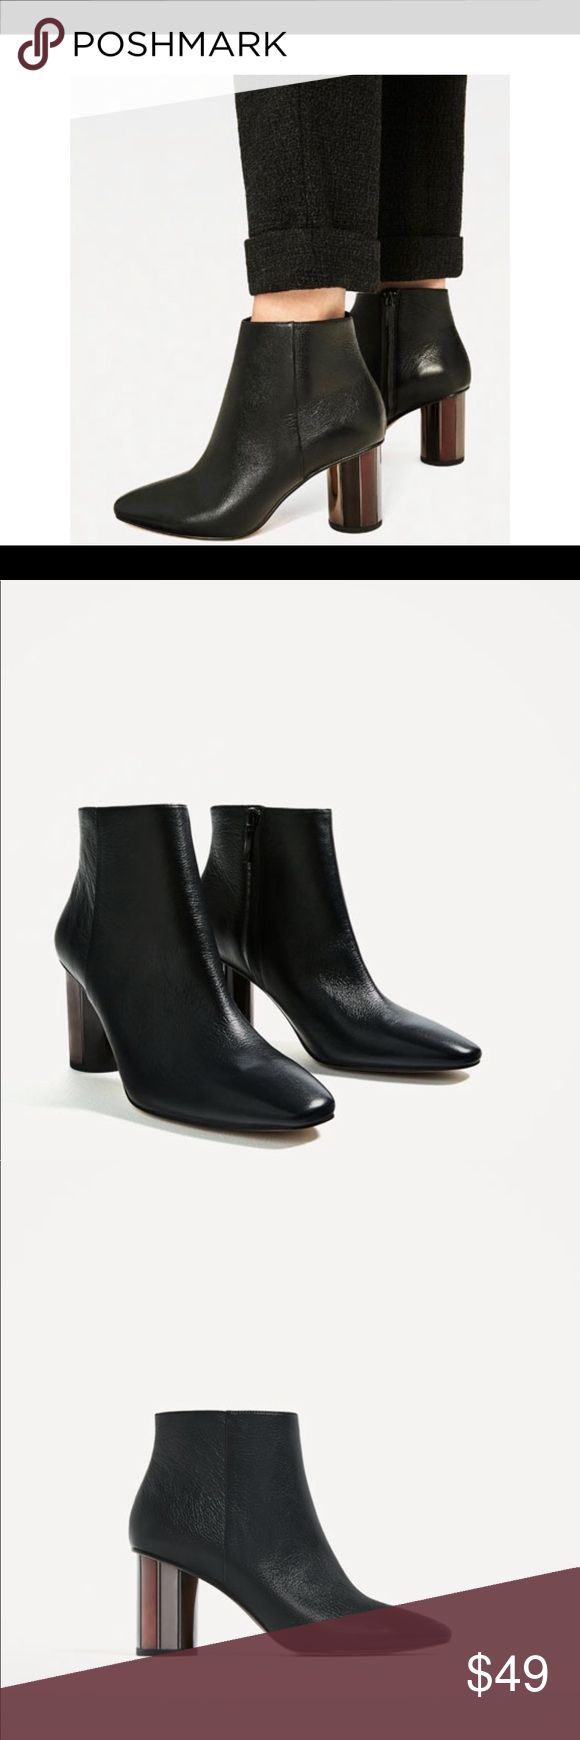 Zara leather ankle boots with metallic Heel Must have black leather ankle boots.   New in box ‼️ its listed on the official website as 6.5, but equivalent to 37🤗 Zara Shoes Ankle Boots & Booties